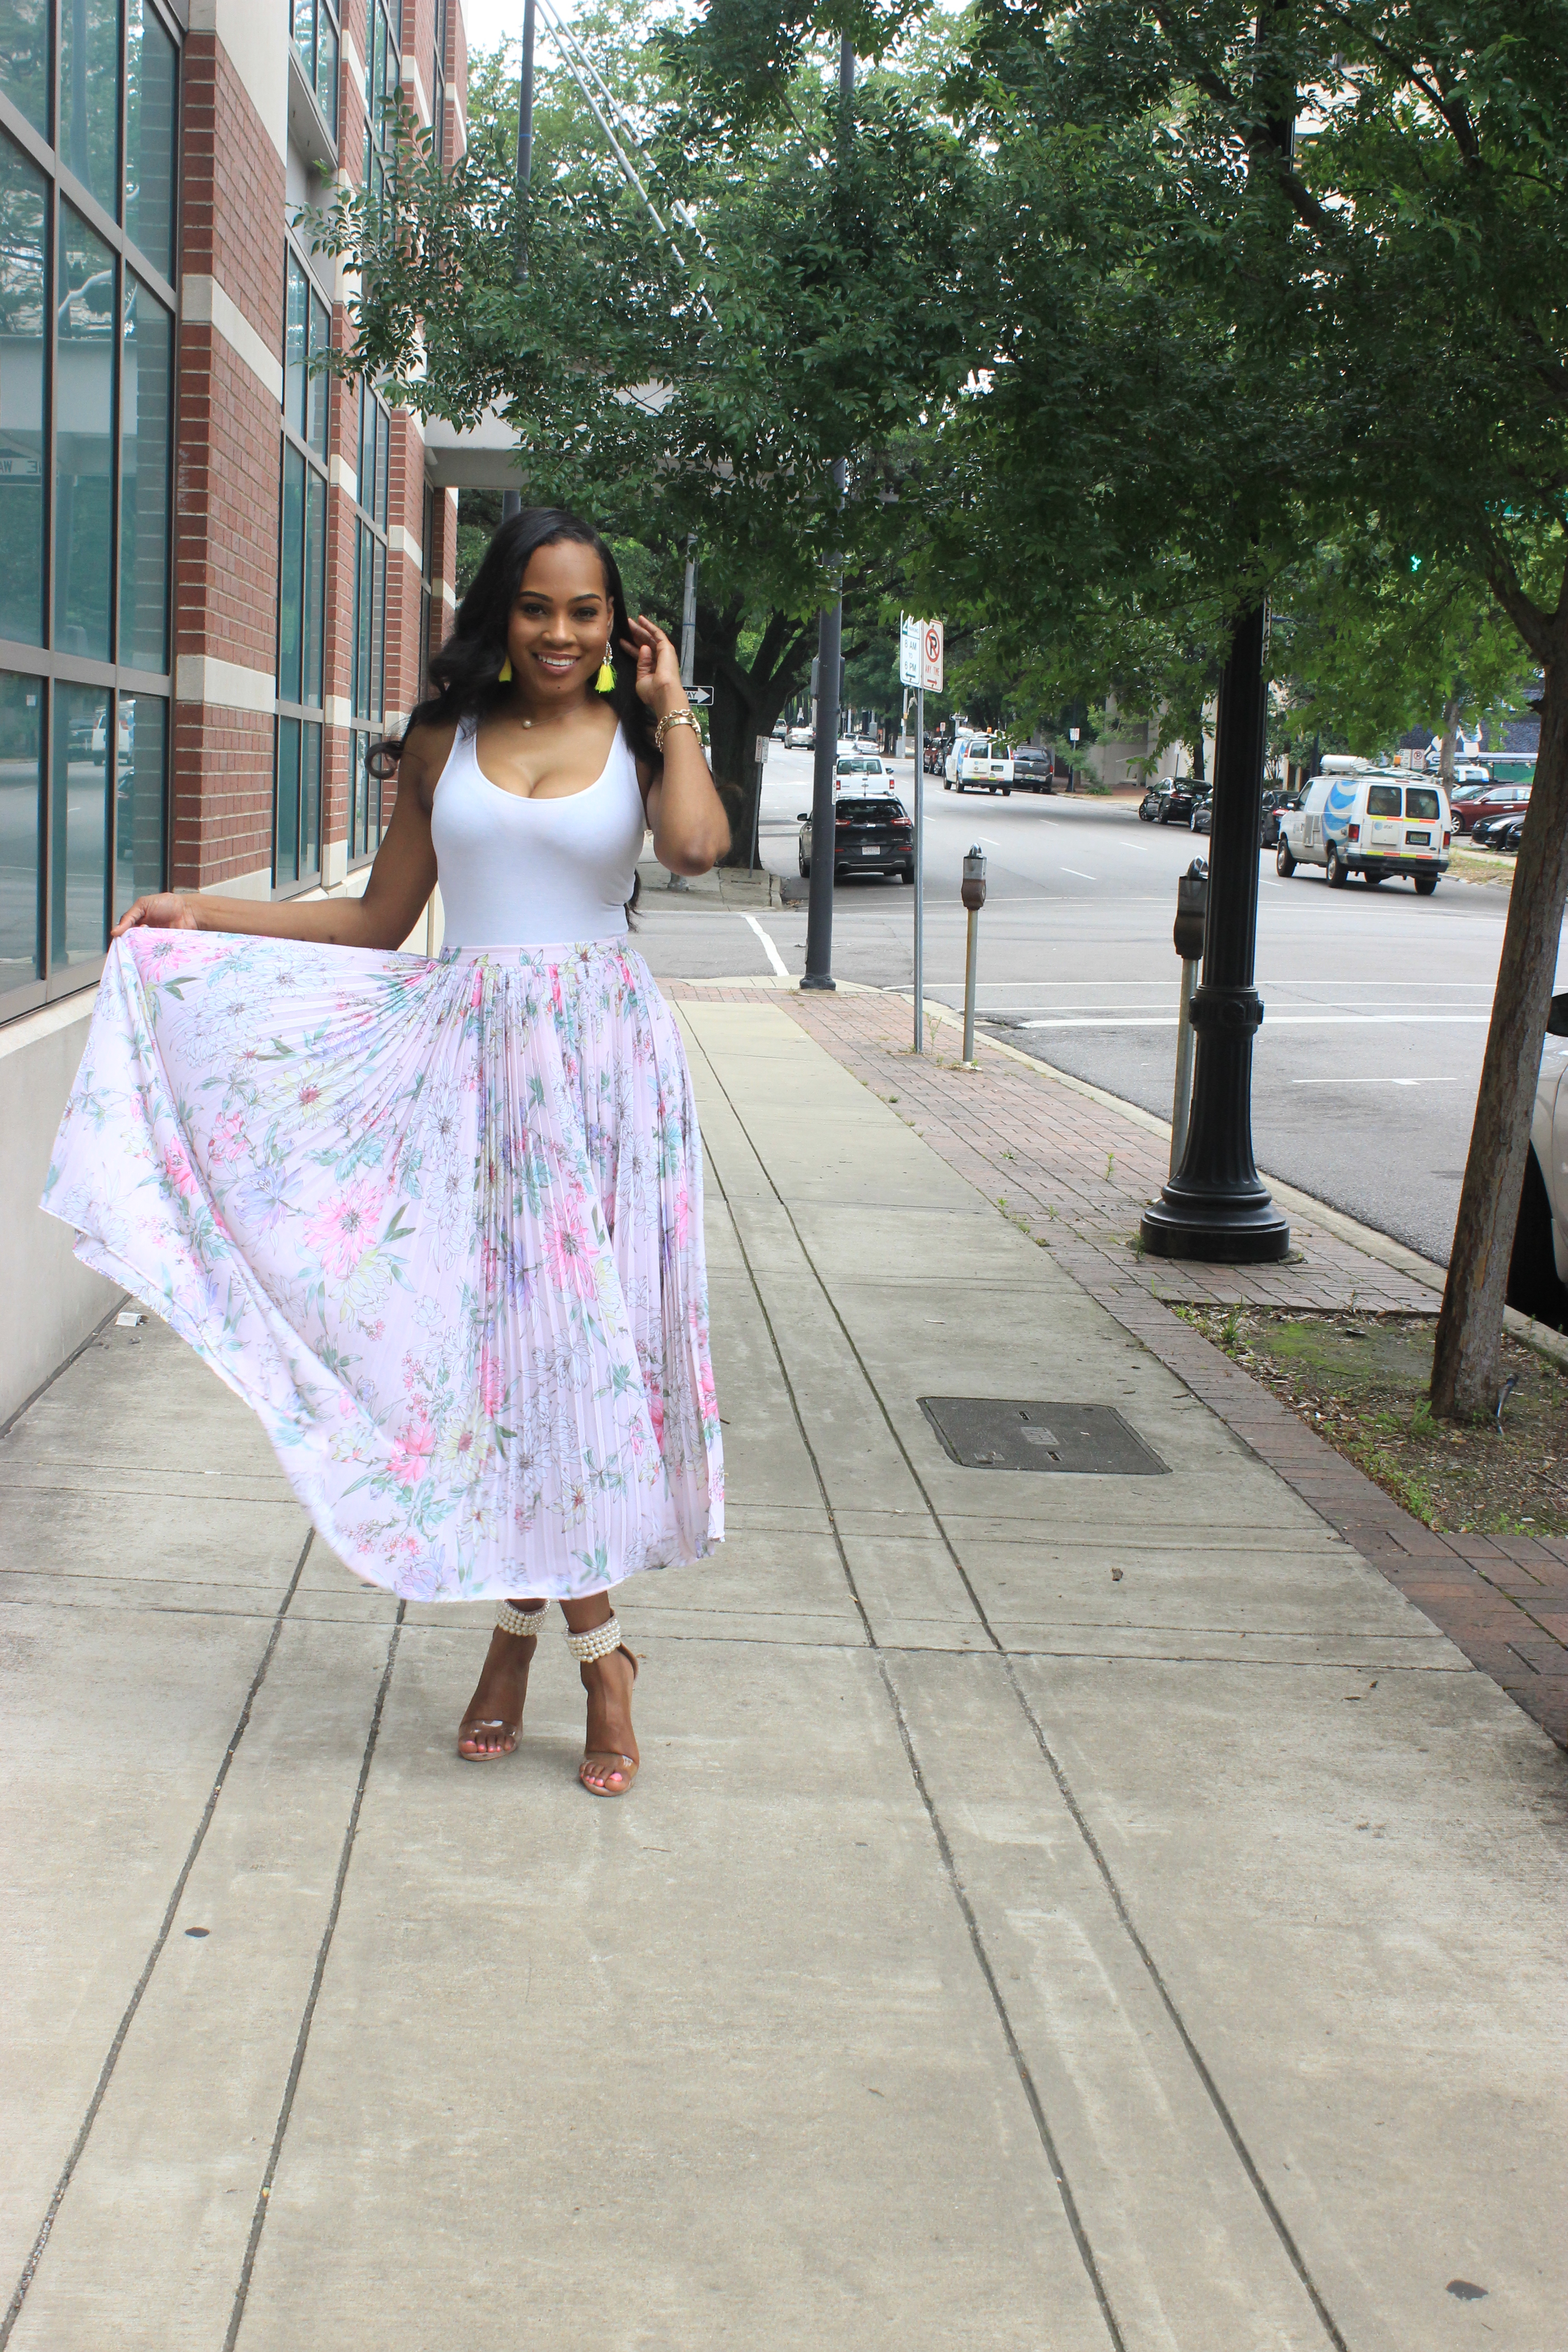 Style-files-hm-pleated-pastel-pink-floral-pleated-midi-skirt-forever21-bodysuit-misguided-pearl-ankle-strap-heel-sandals-oohlalablog-top-Birmingham-Alabama-blogger-4